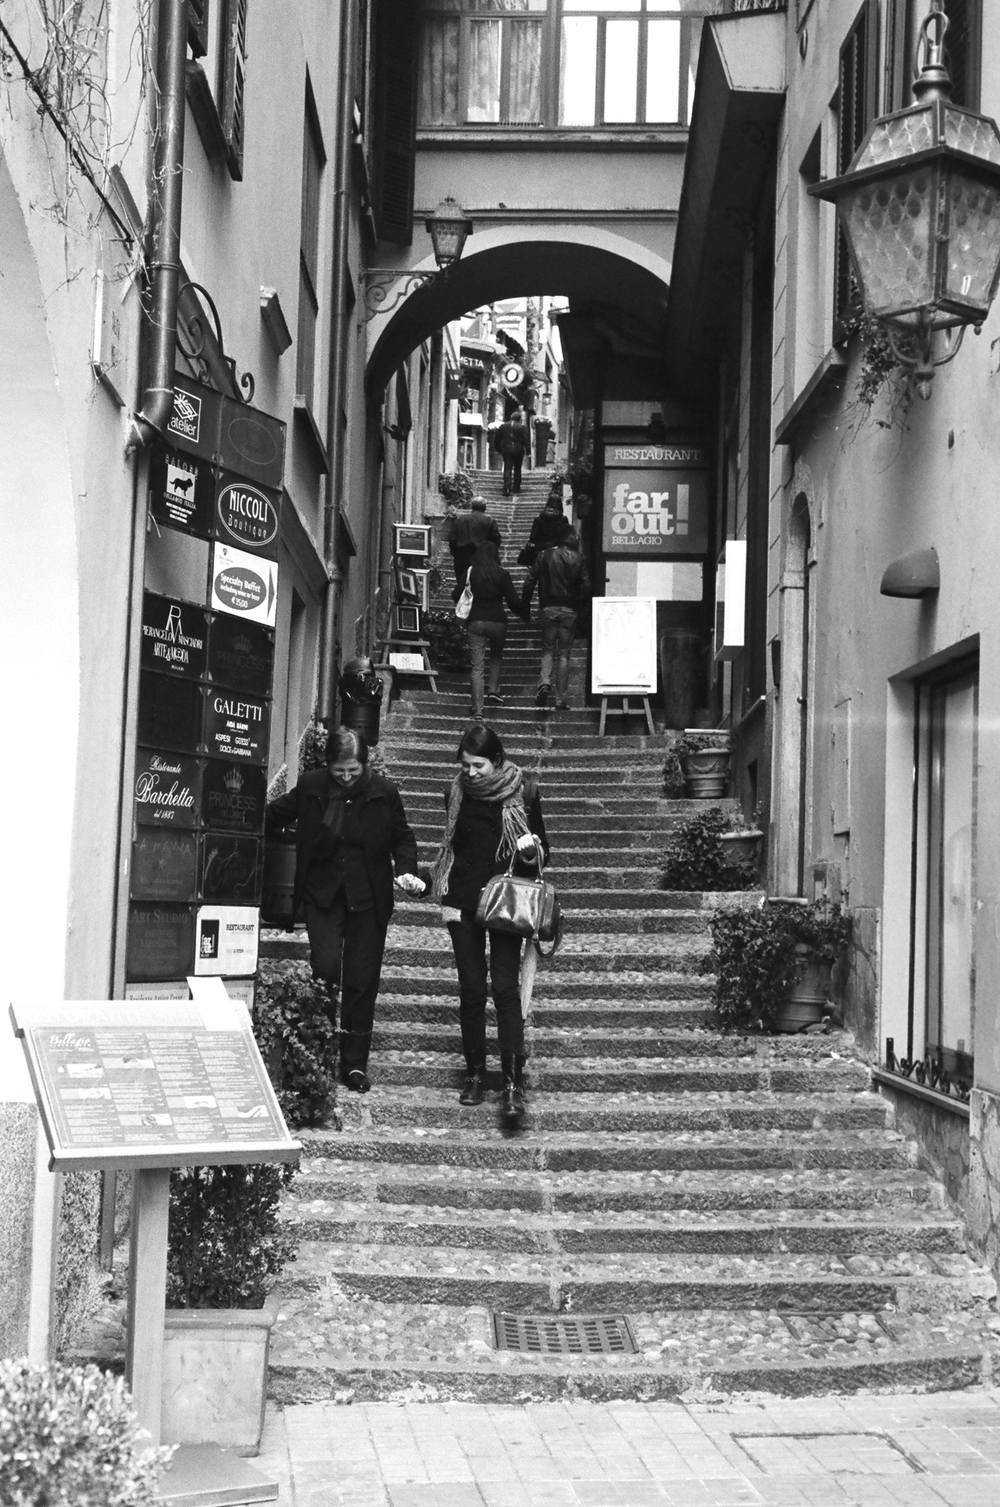 Having just arrived in Bellagio, a small town on Lake Como in northern Italy.